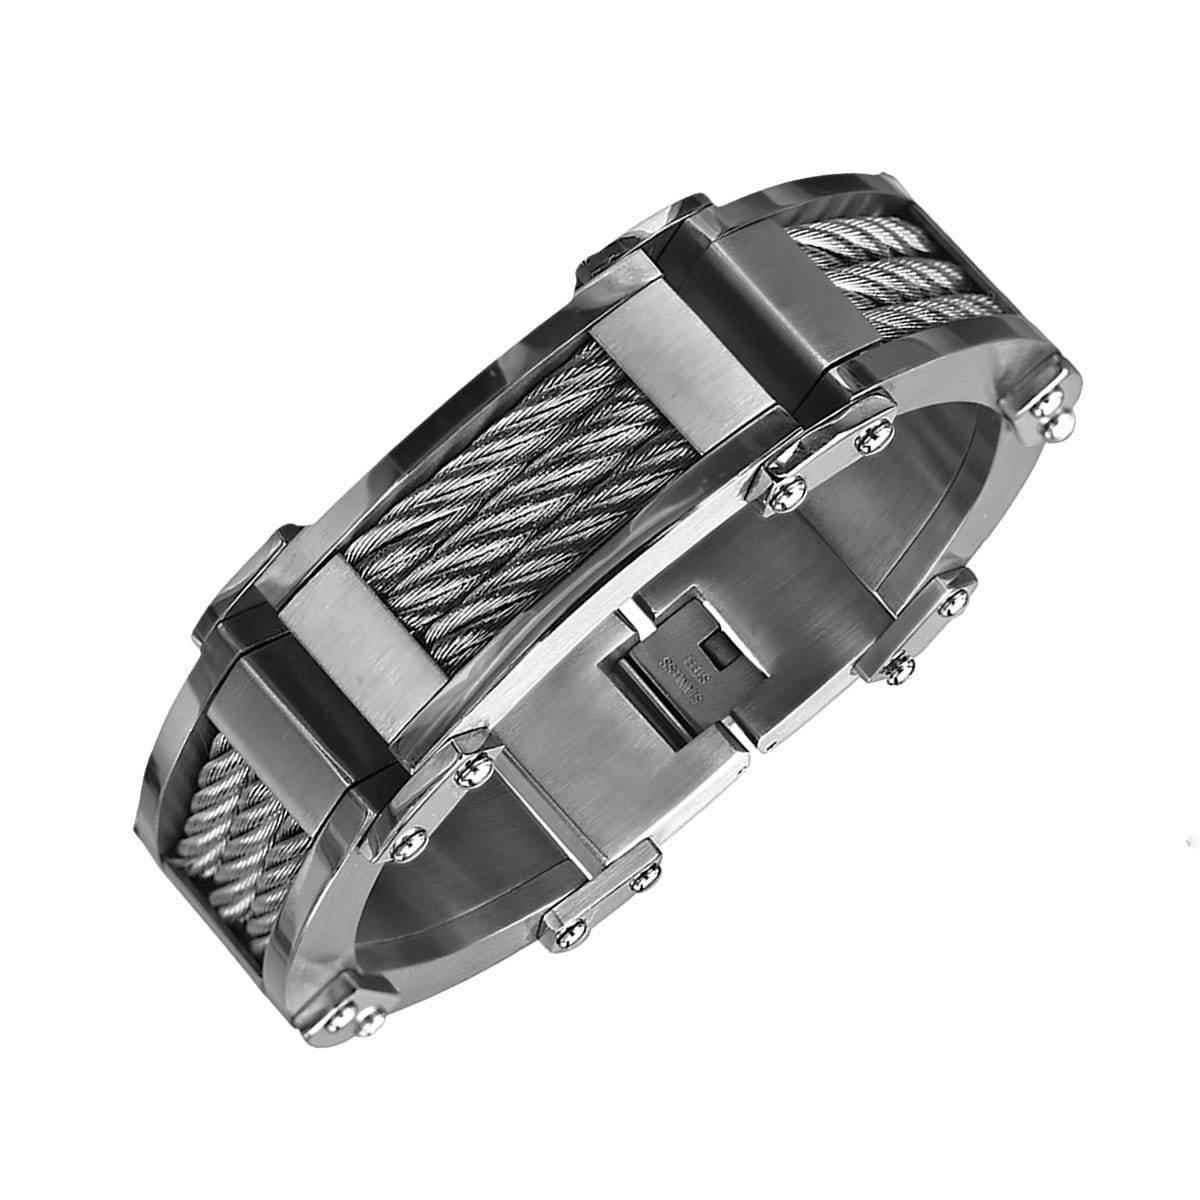 Silver Stainless Steel Industrial Three Large Cable Link Bracelet - Inox Jewelry India